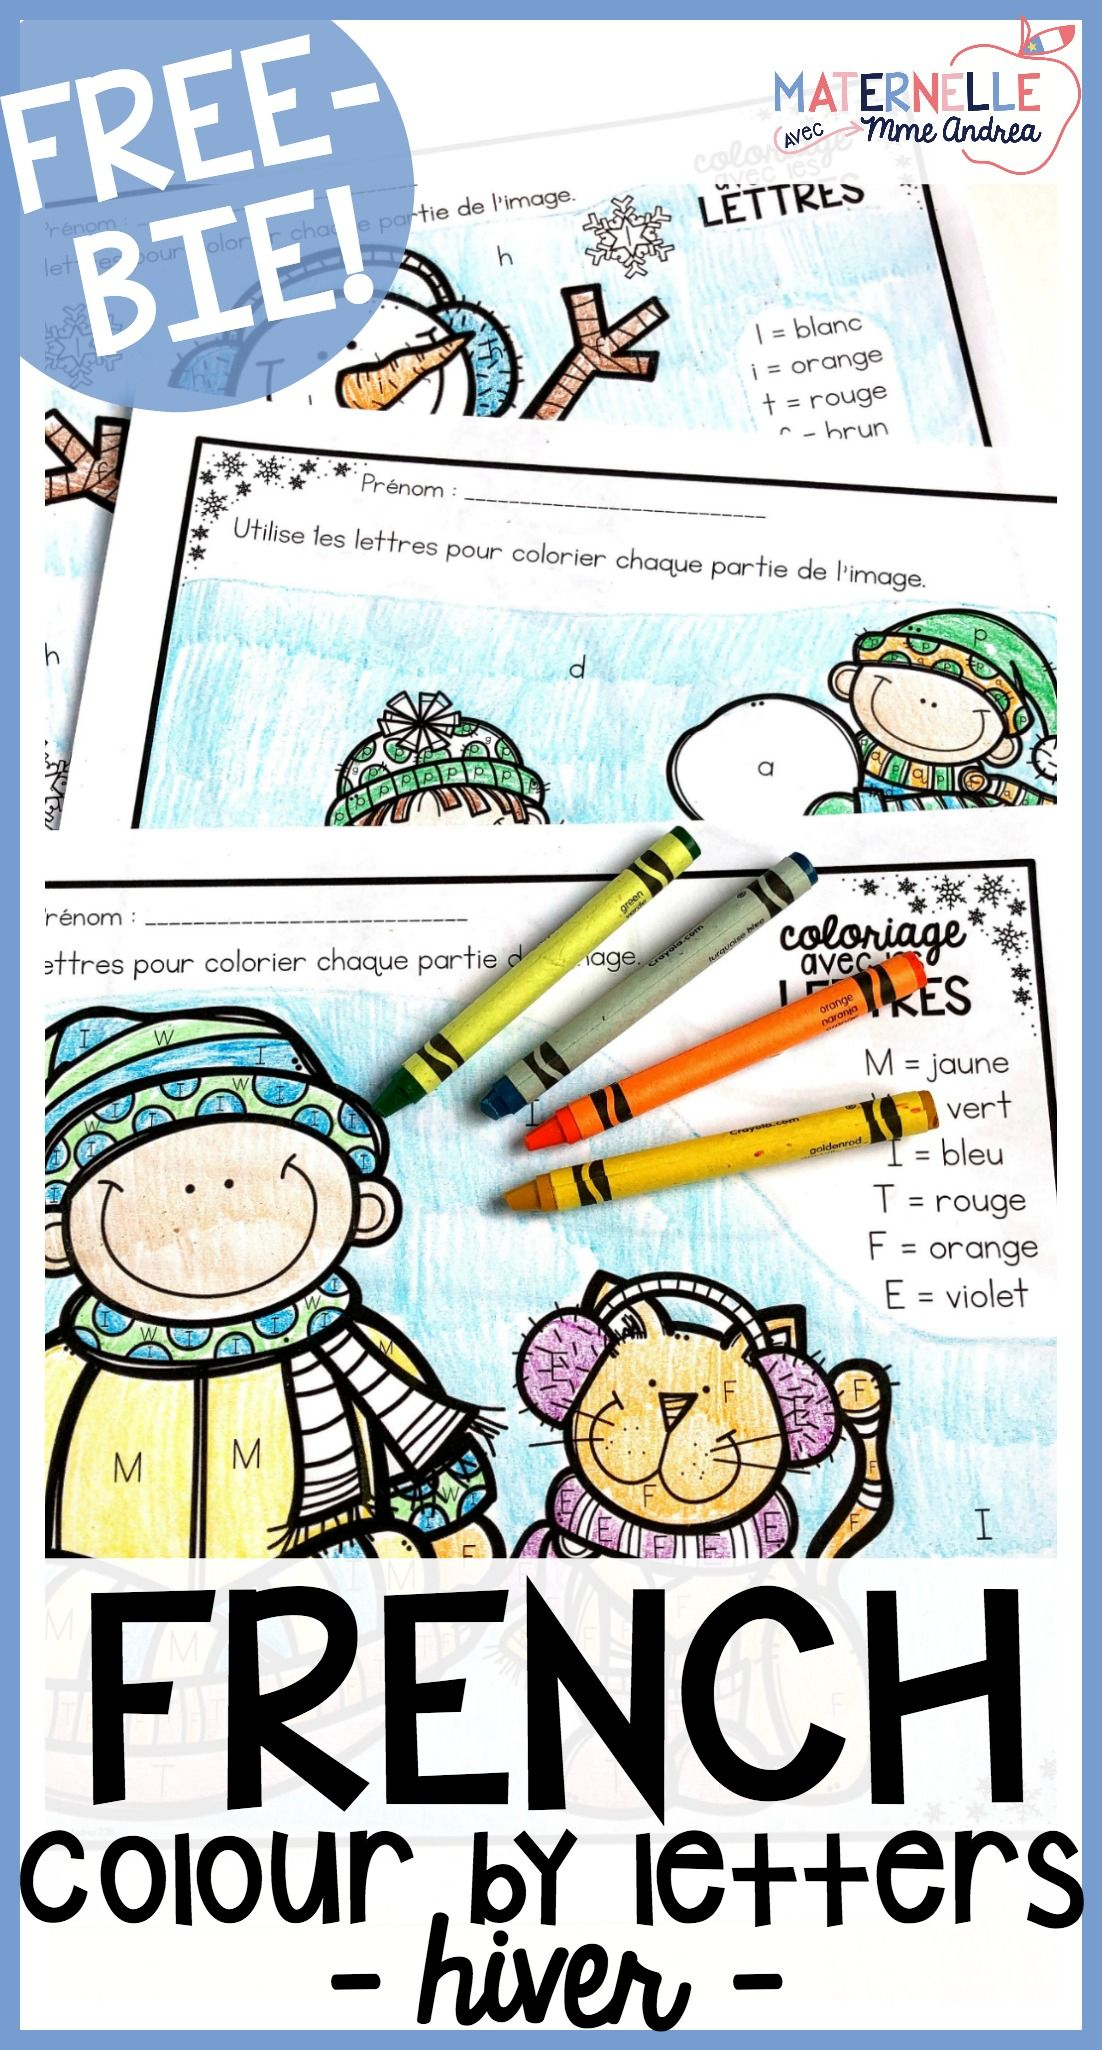 Free French Colour By Letter Winter Worksheets Help Your Students Practice Differentiating Between Similar Lett Free In French French Colors French Activities [ 2050 x 1102 Pixel ]